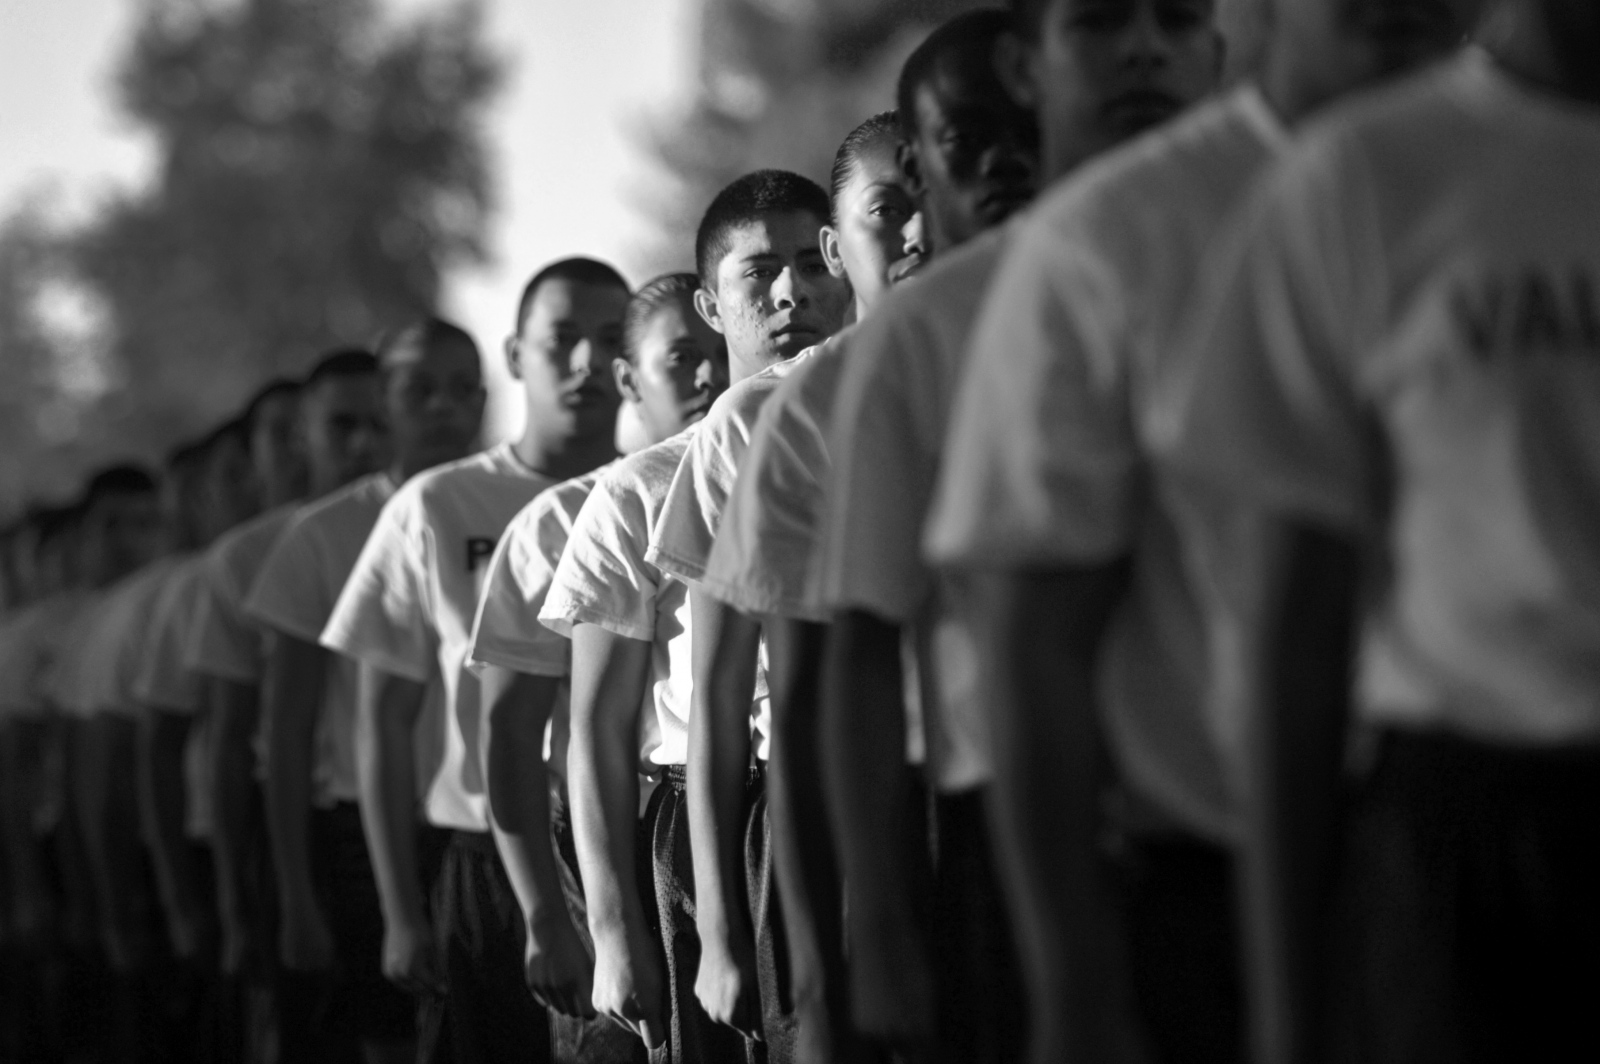 Explorer recruits in Class 93 at the North Academy line up in formation for PT on Sept. 27, 2014.